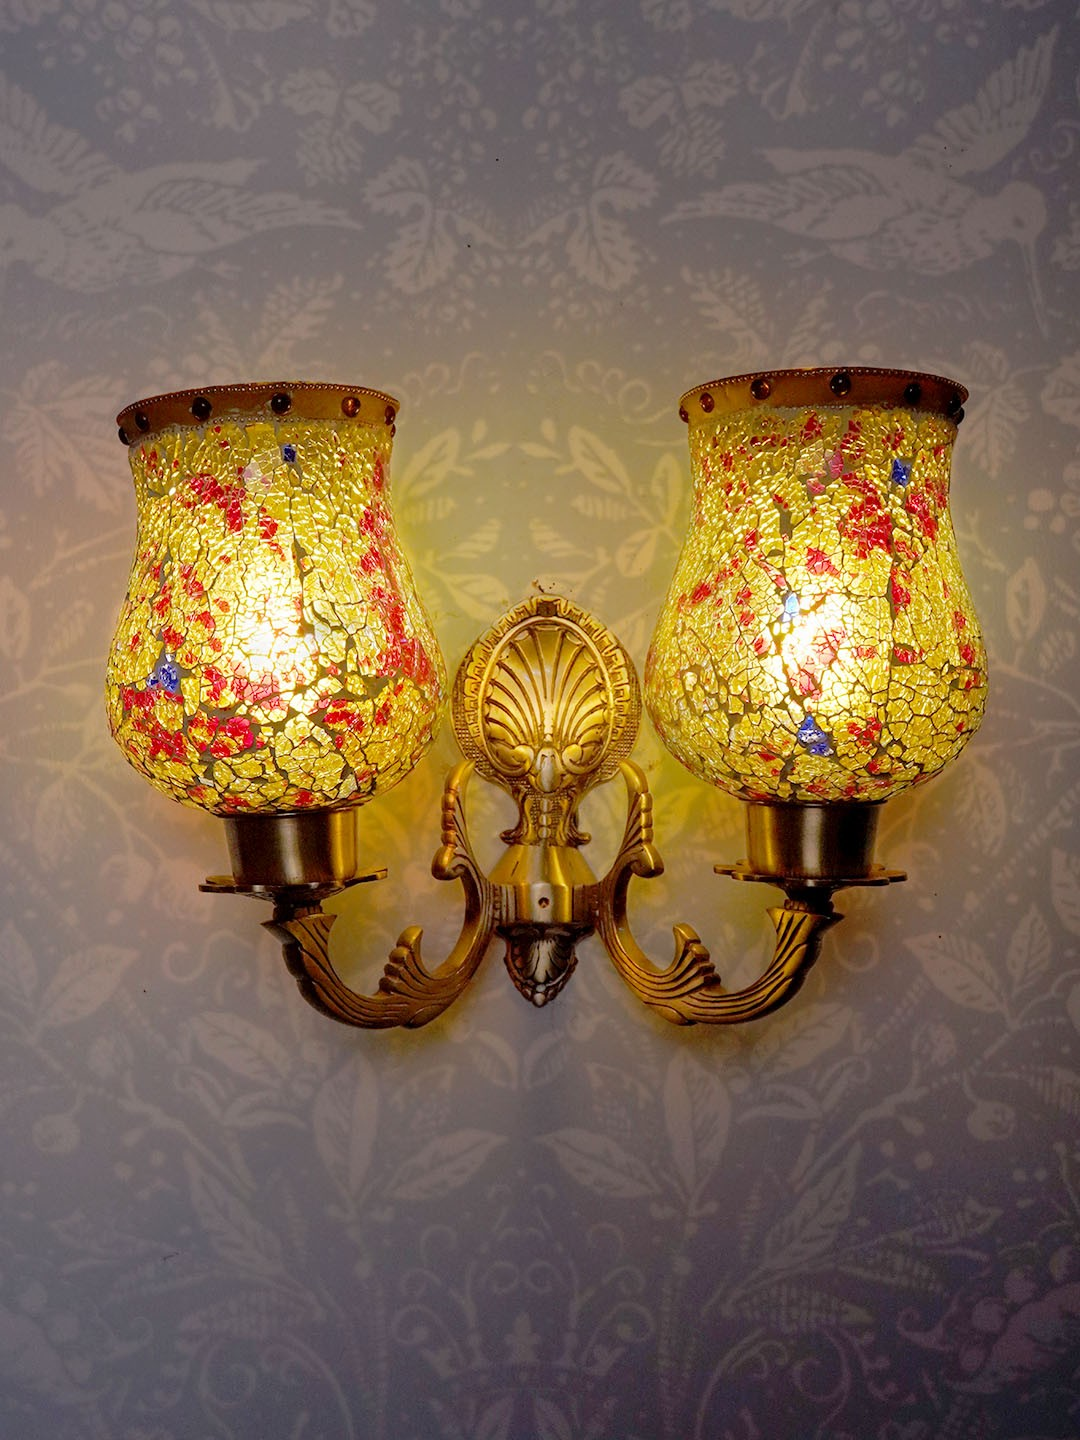 Gold Antique Designer Wall Lamp Wall Light for Dining Room, Bedroom, Living Room Portuguese Style Wall Sconce with Designer Glass and Brass Material